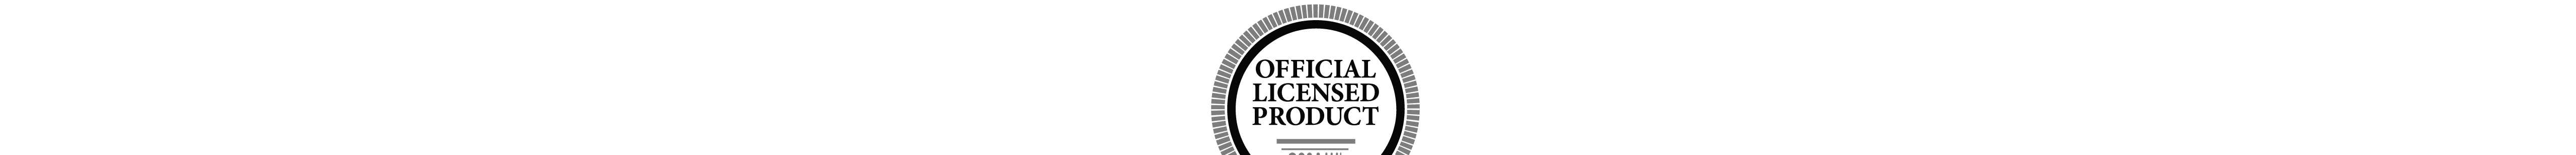 Official Licensed Product Vendor Greek Life Products